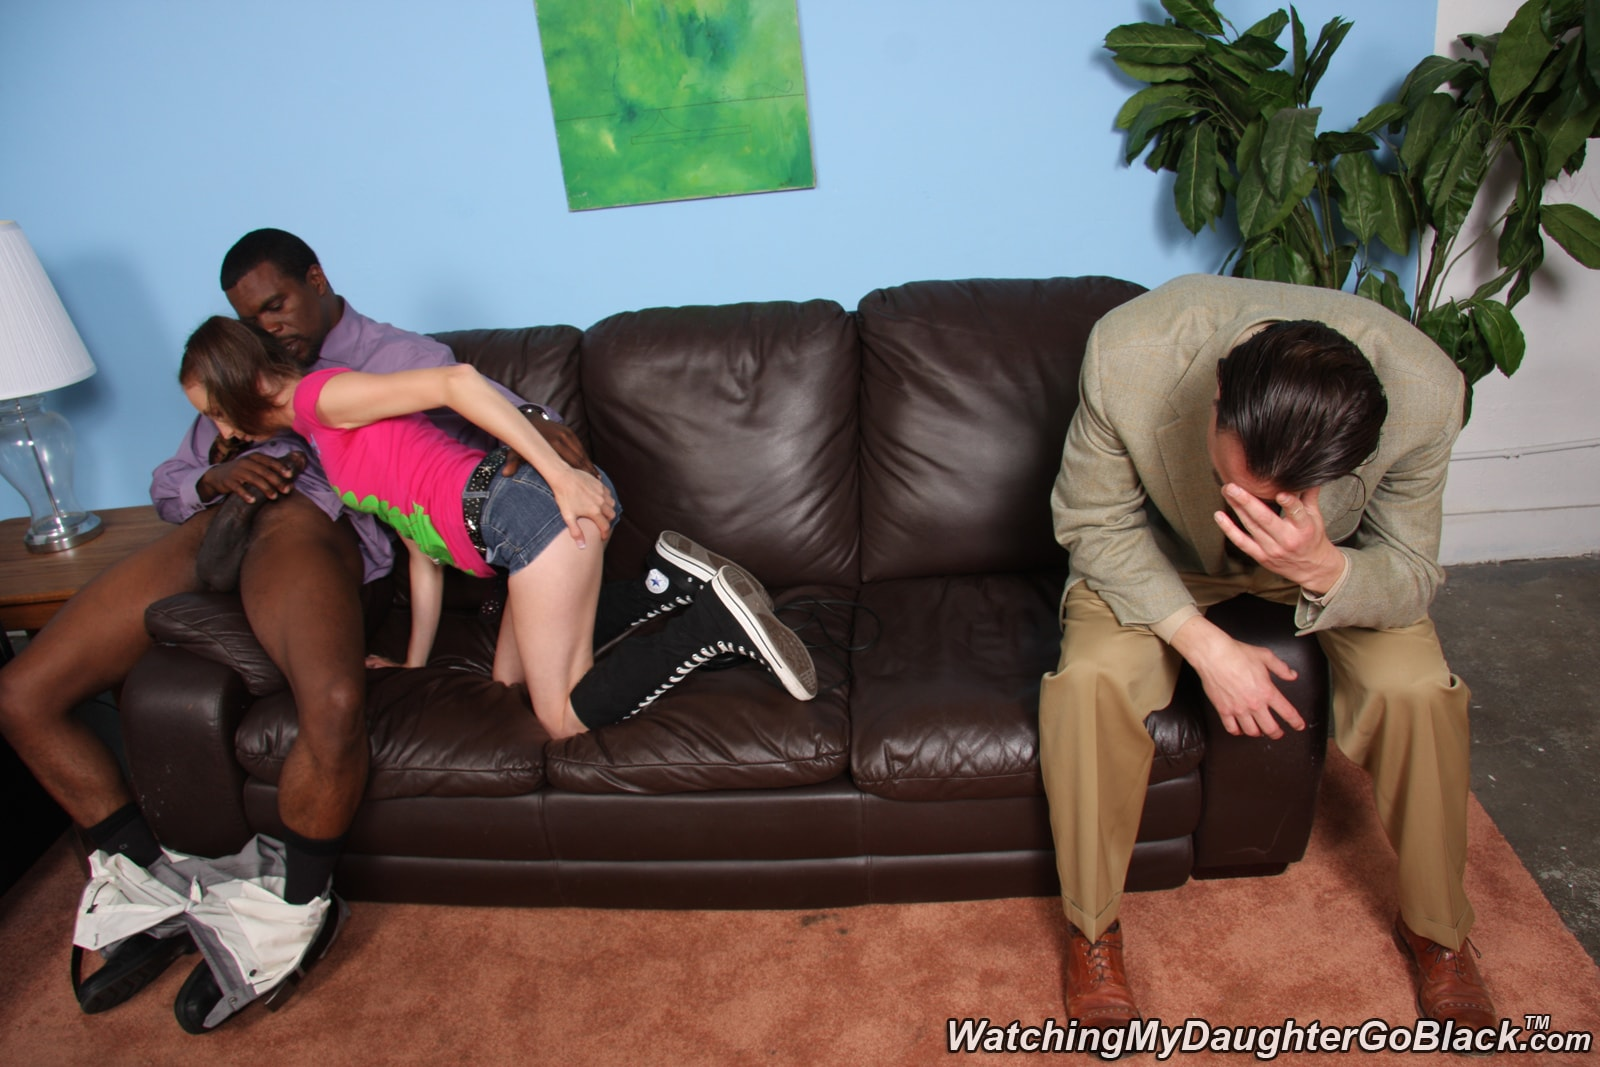 Dogfart 'Emma Luvgood - Watching My Daughter Go Black' starring Emma Luvgood (photo 13)